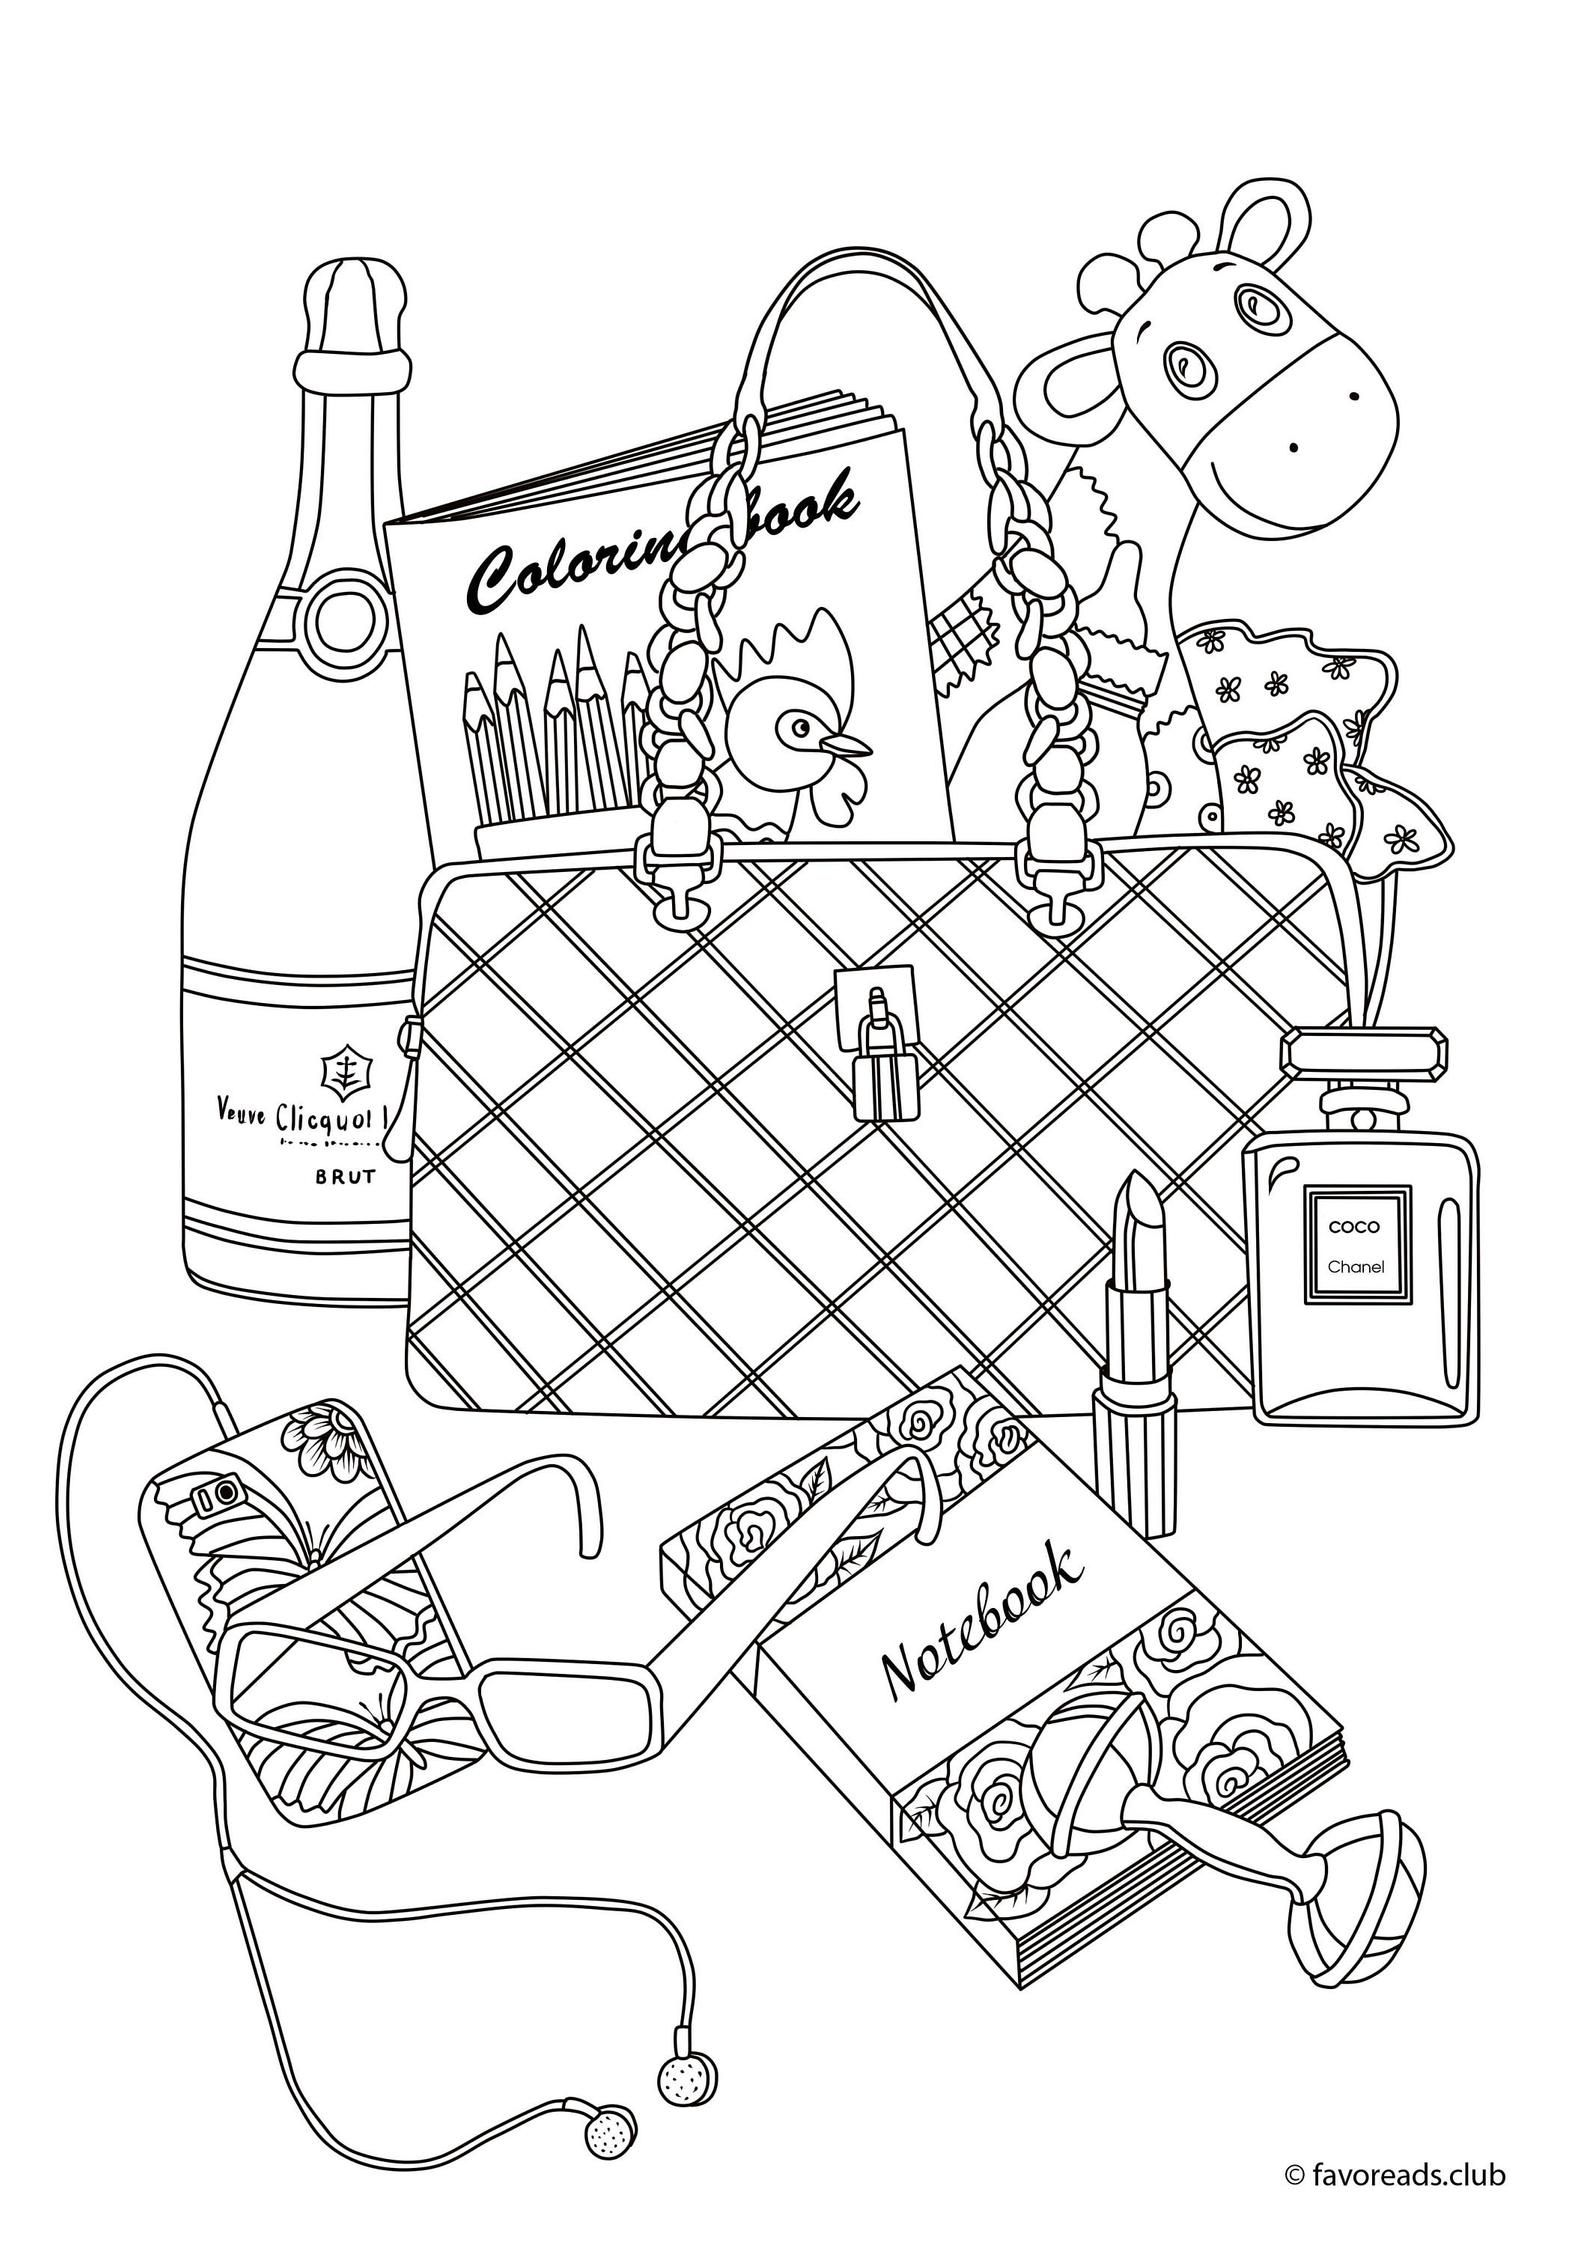 Purse Printable Adult Coloring Page From Favoreads Coloring